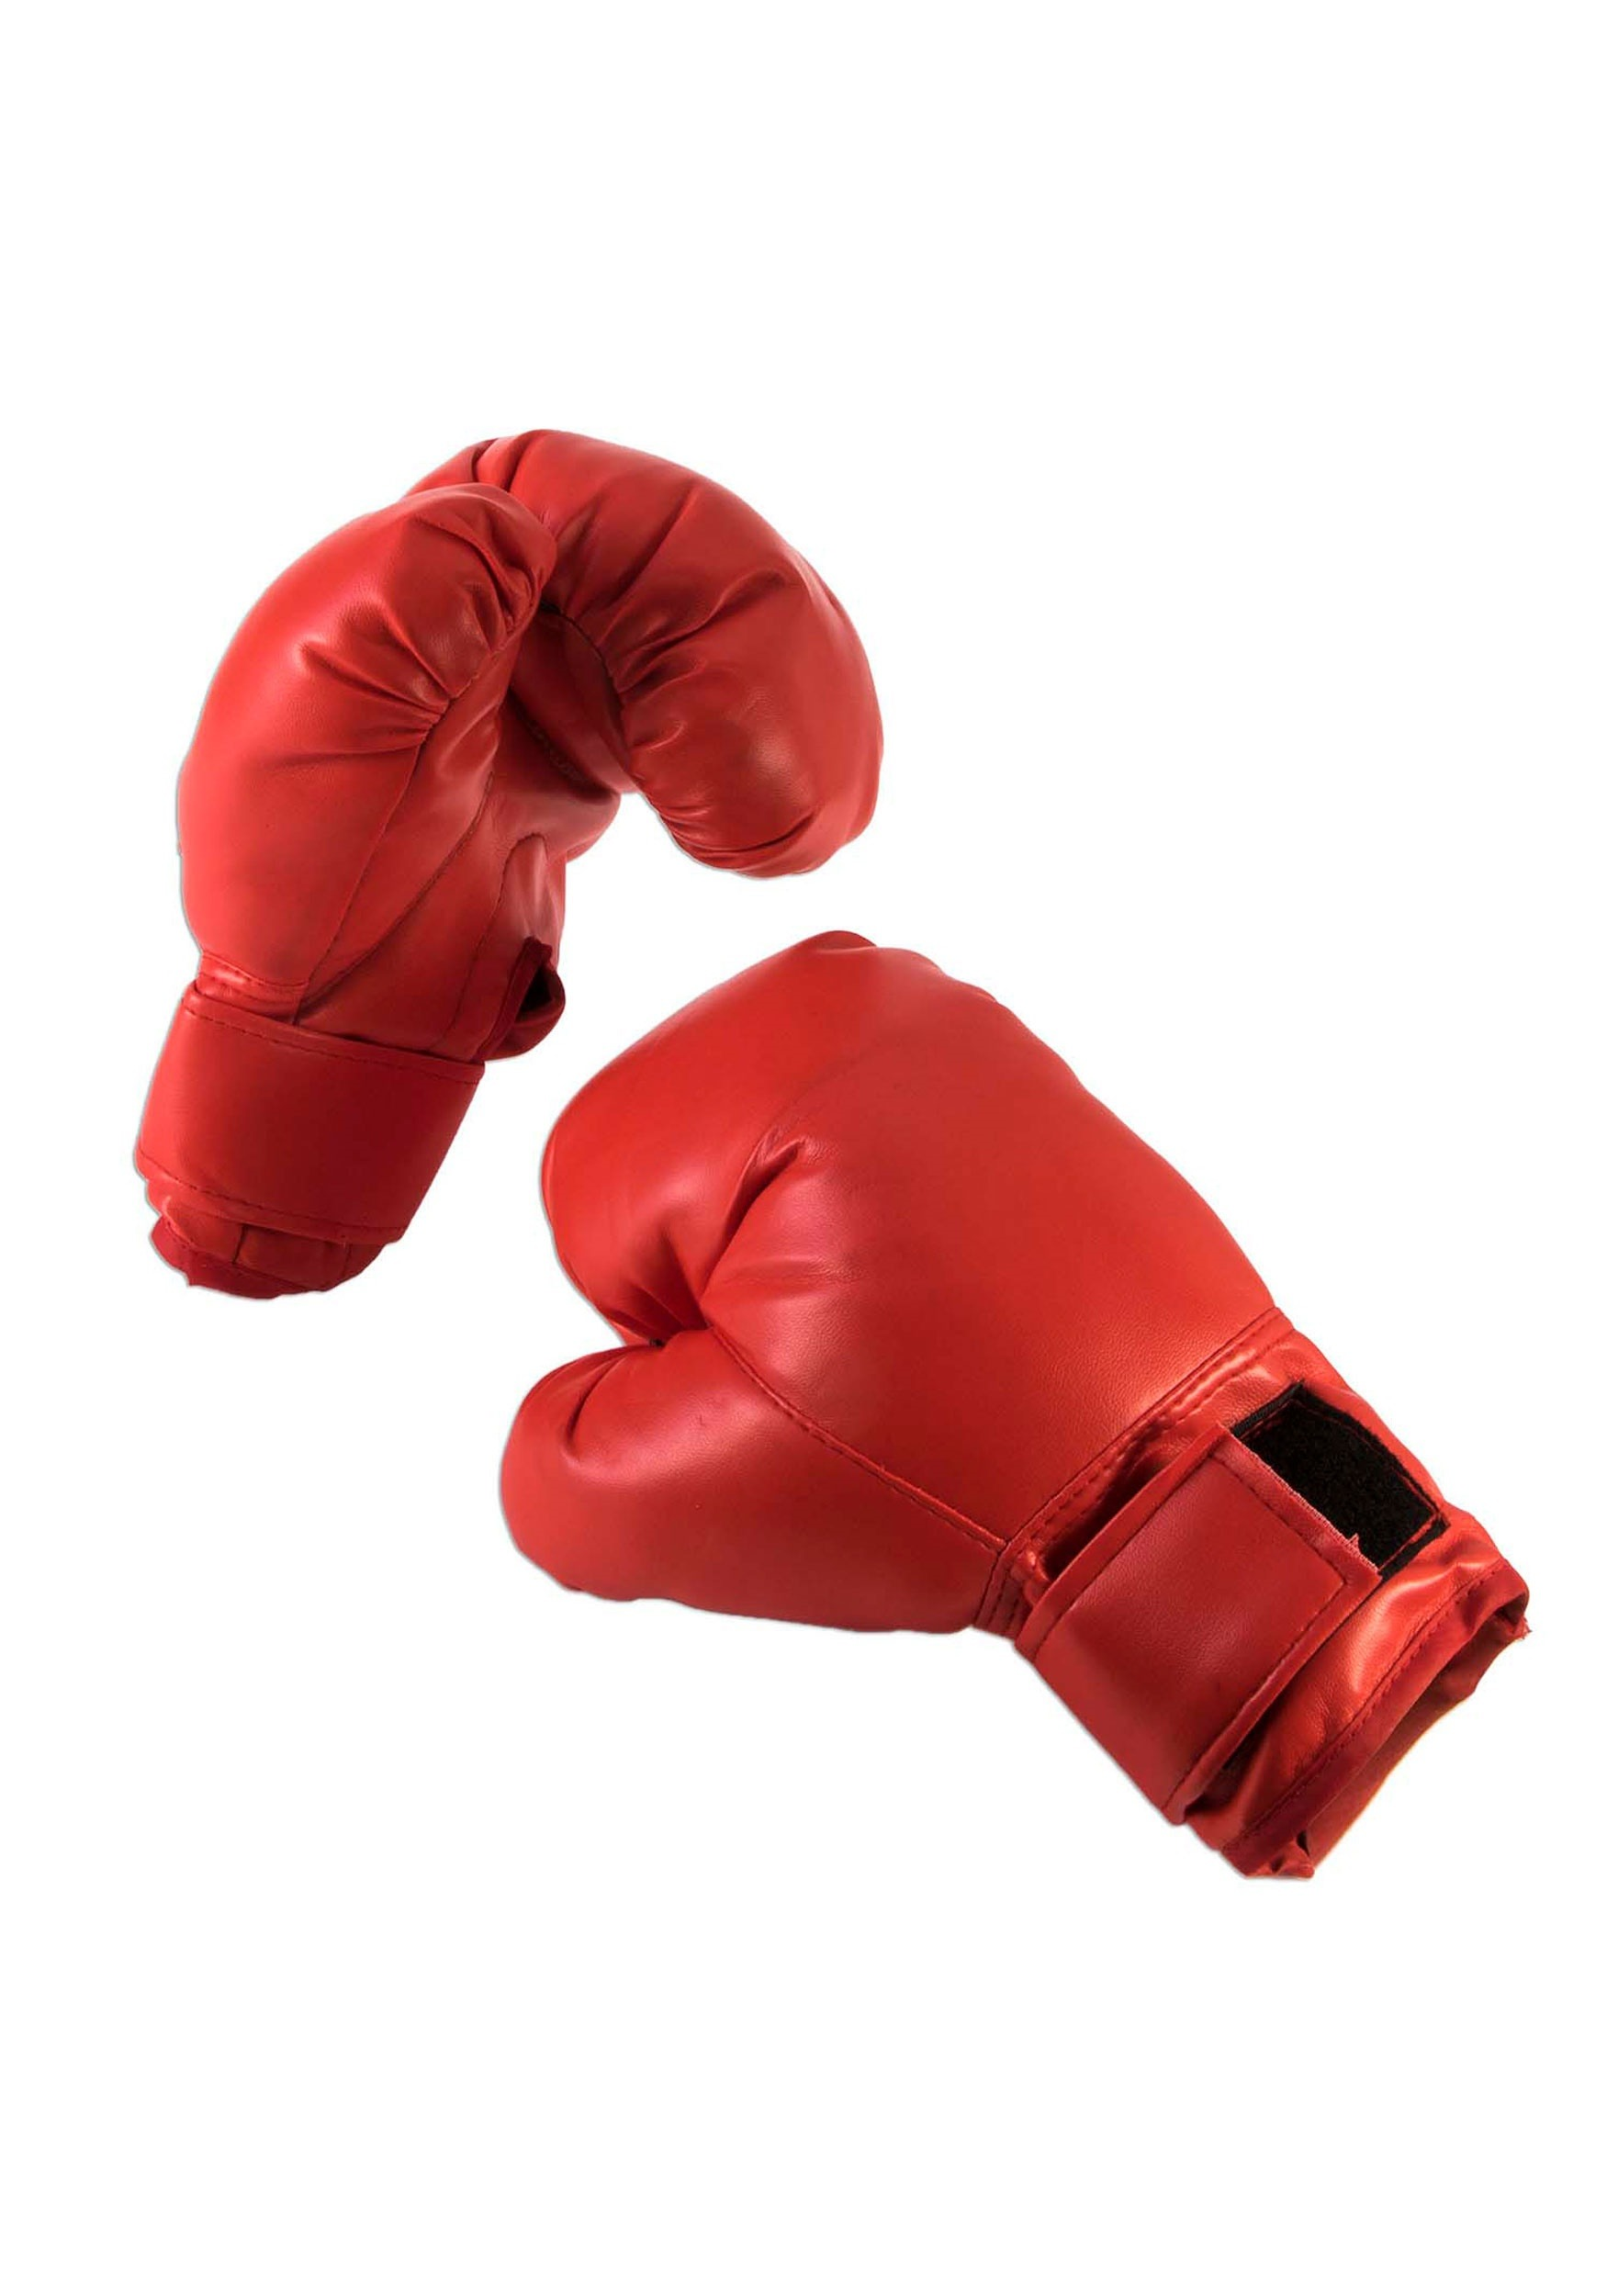 Adult gift gag boxing gloves couples